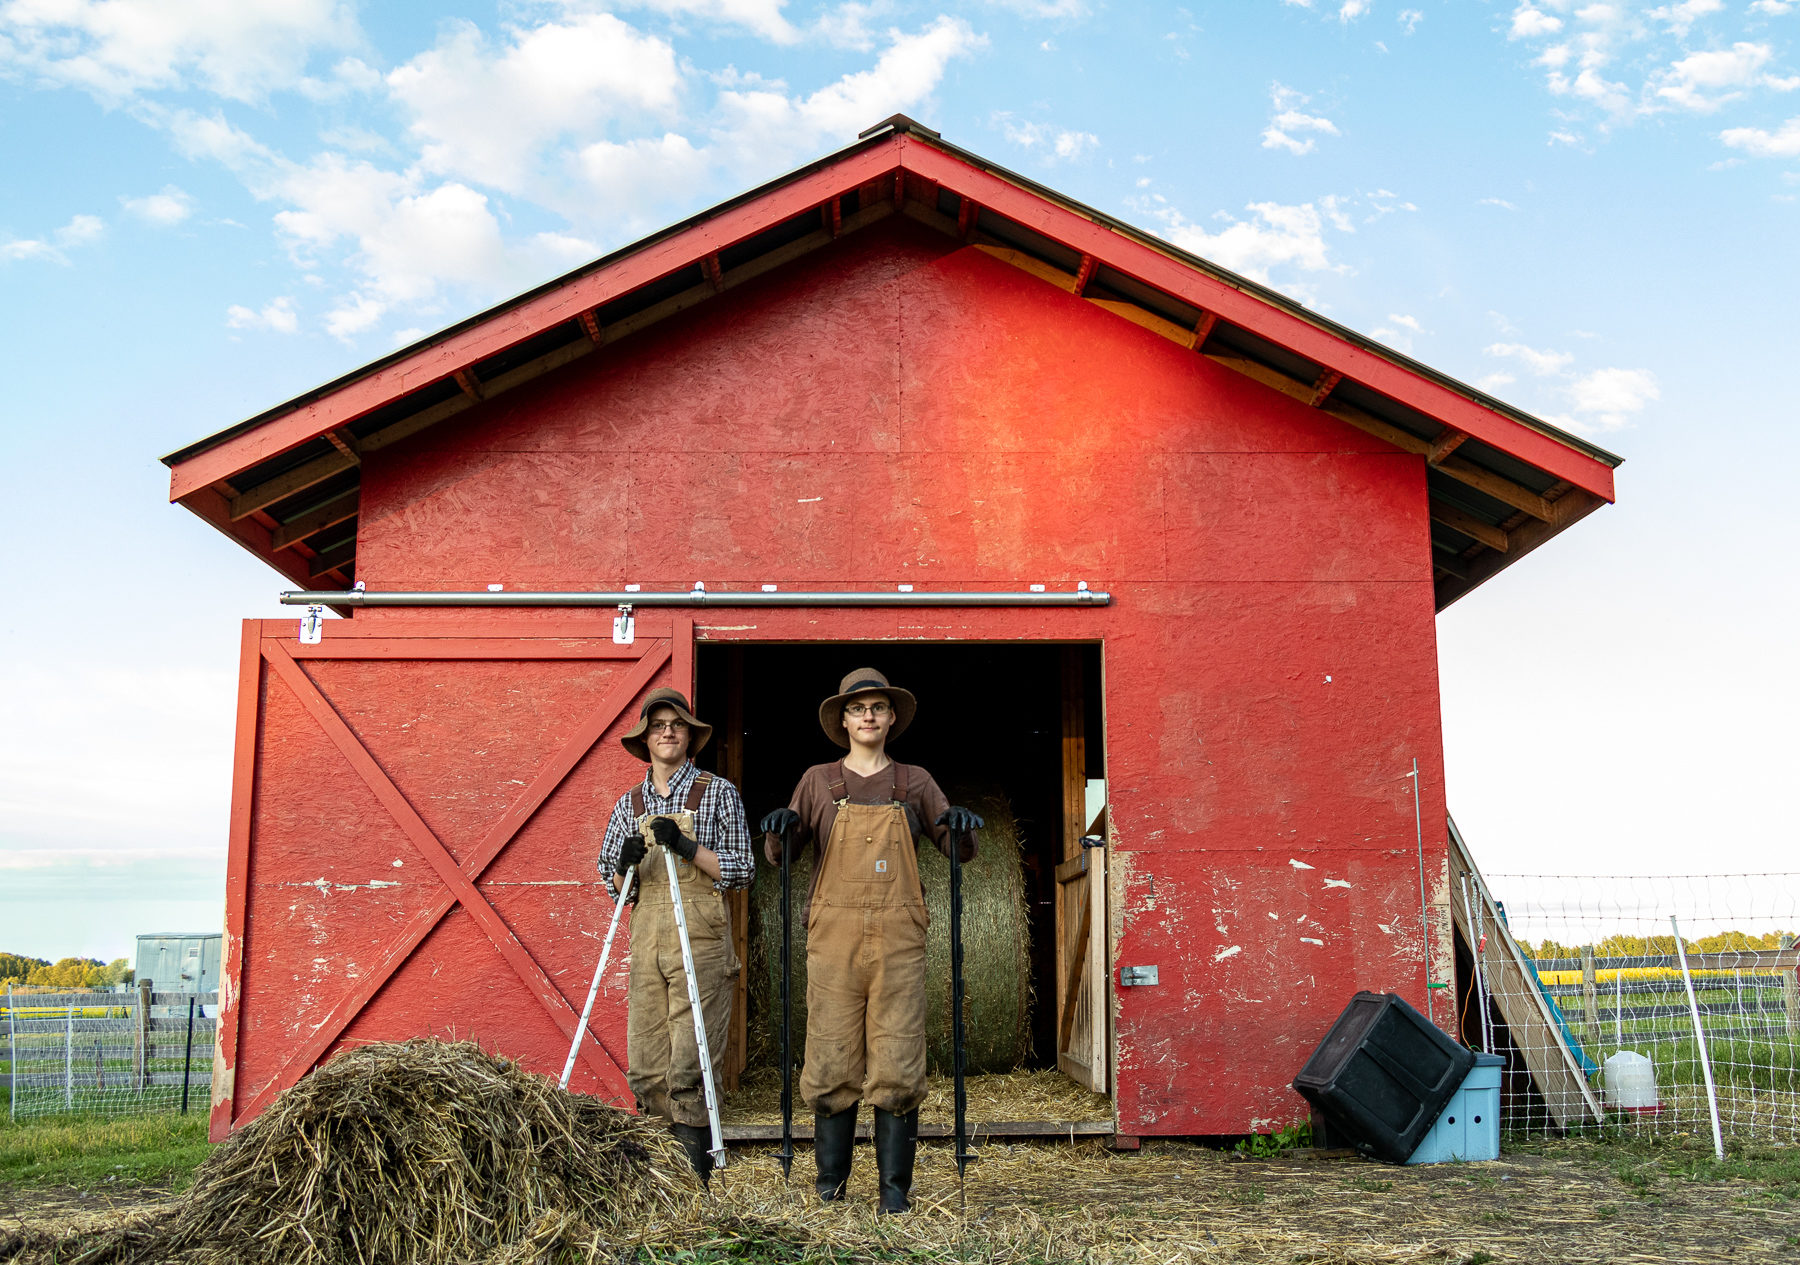 Gabriel and Paul in front of the barn. Here they pause during their evening chores.